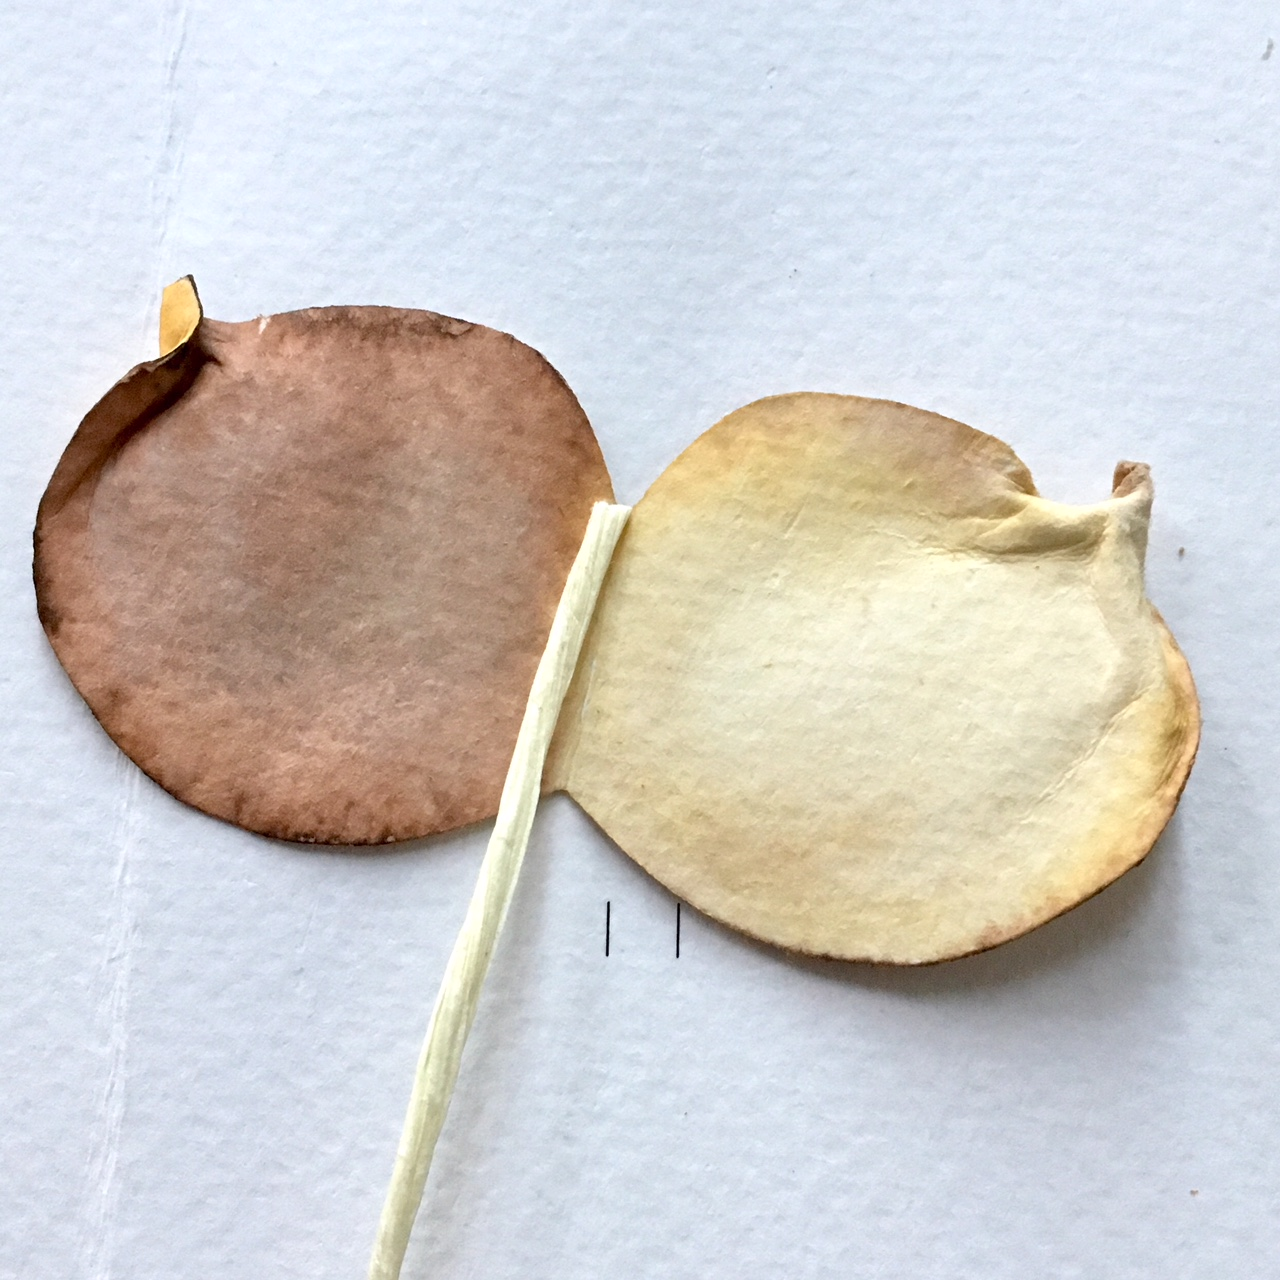 leaf shape and paper wire - ready to glue the wire in the middle of the double leaf shape